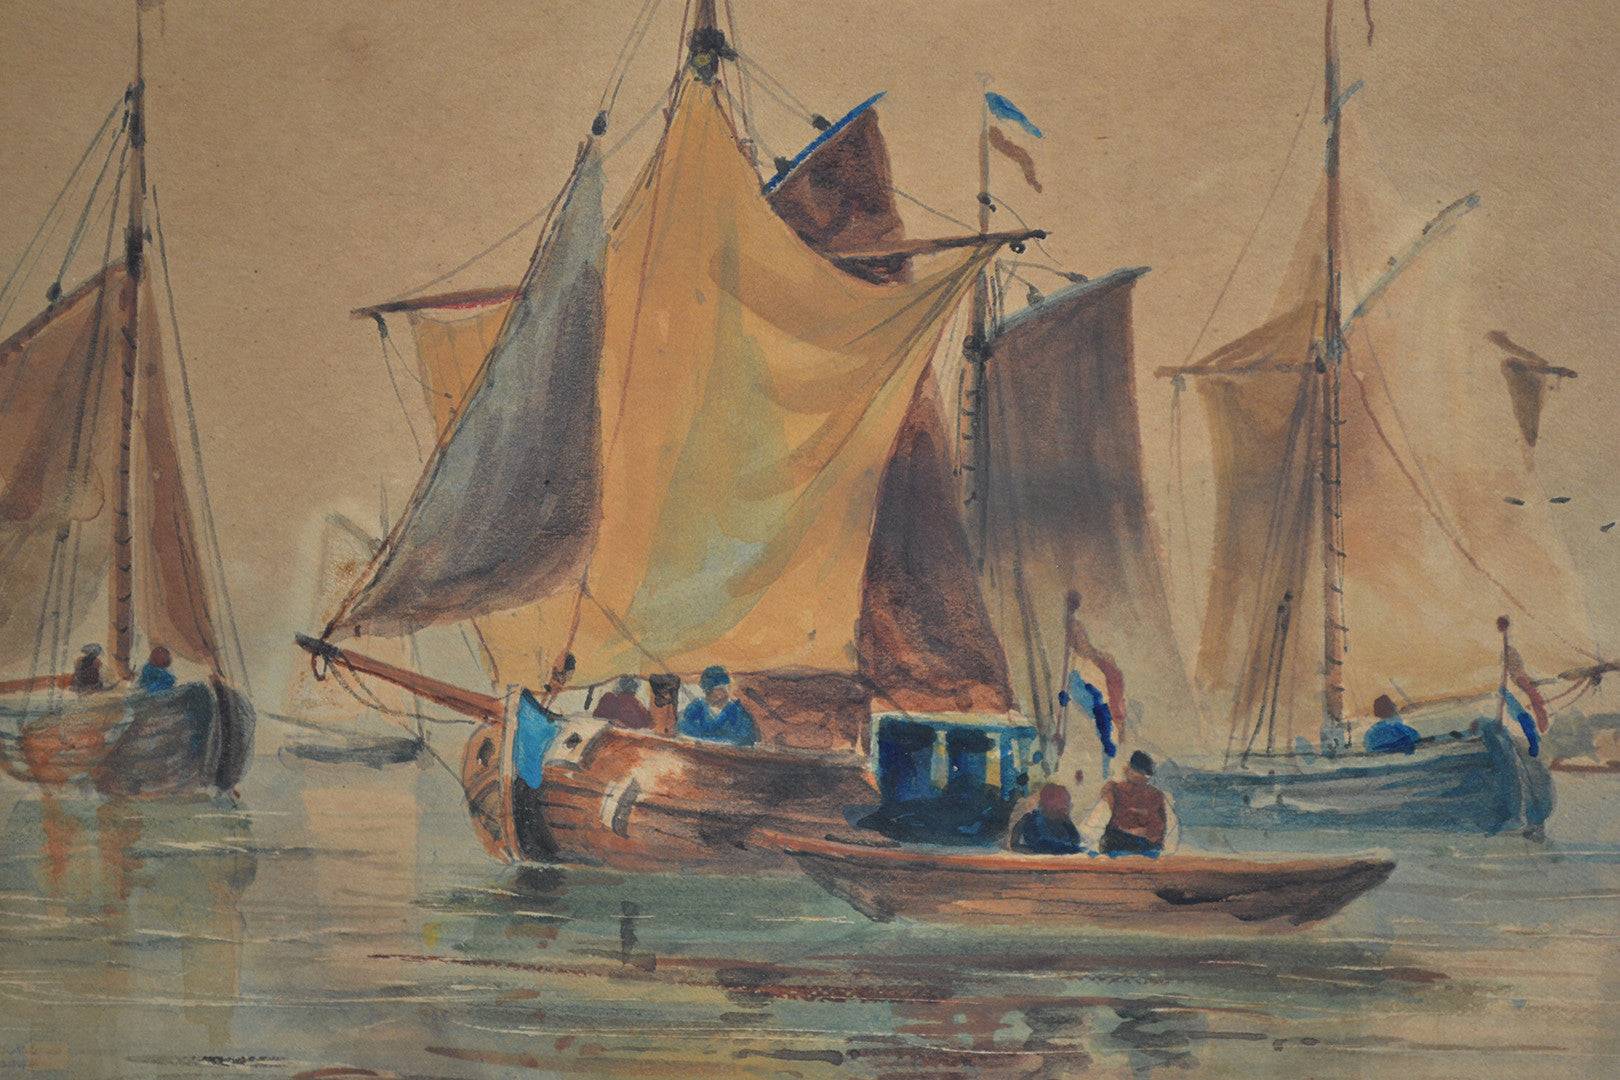 Watercolour by Thomas Bush Hardy